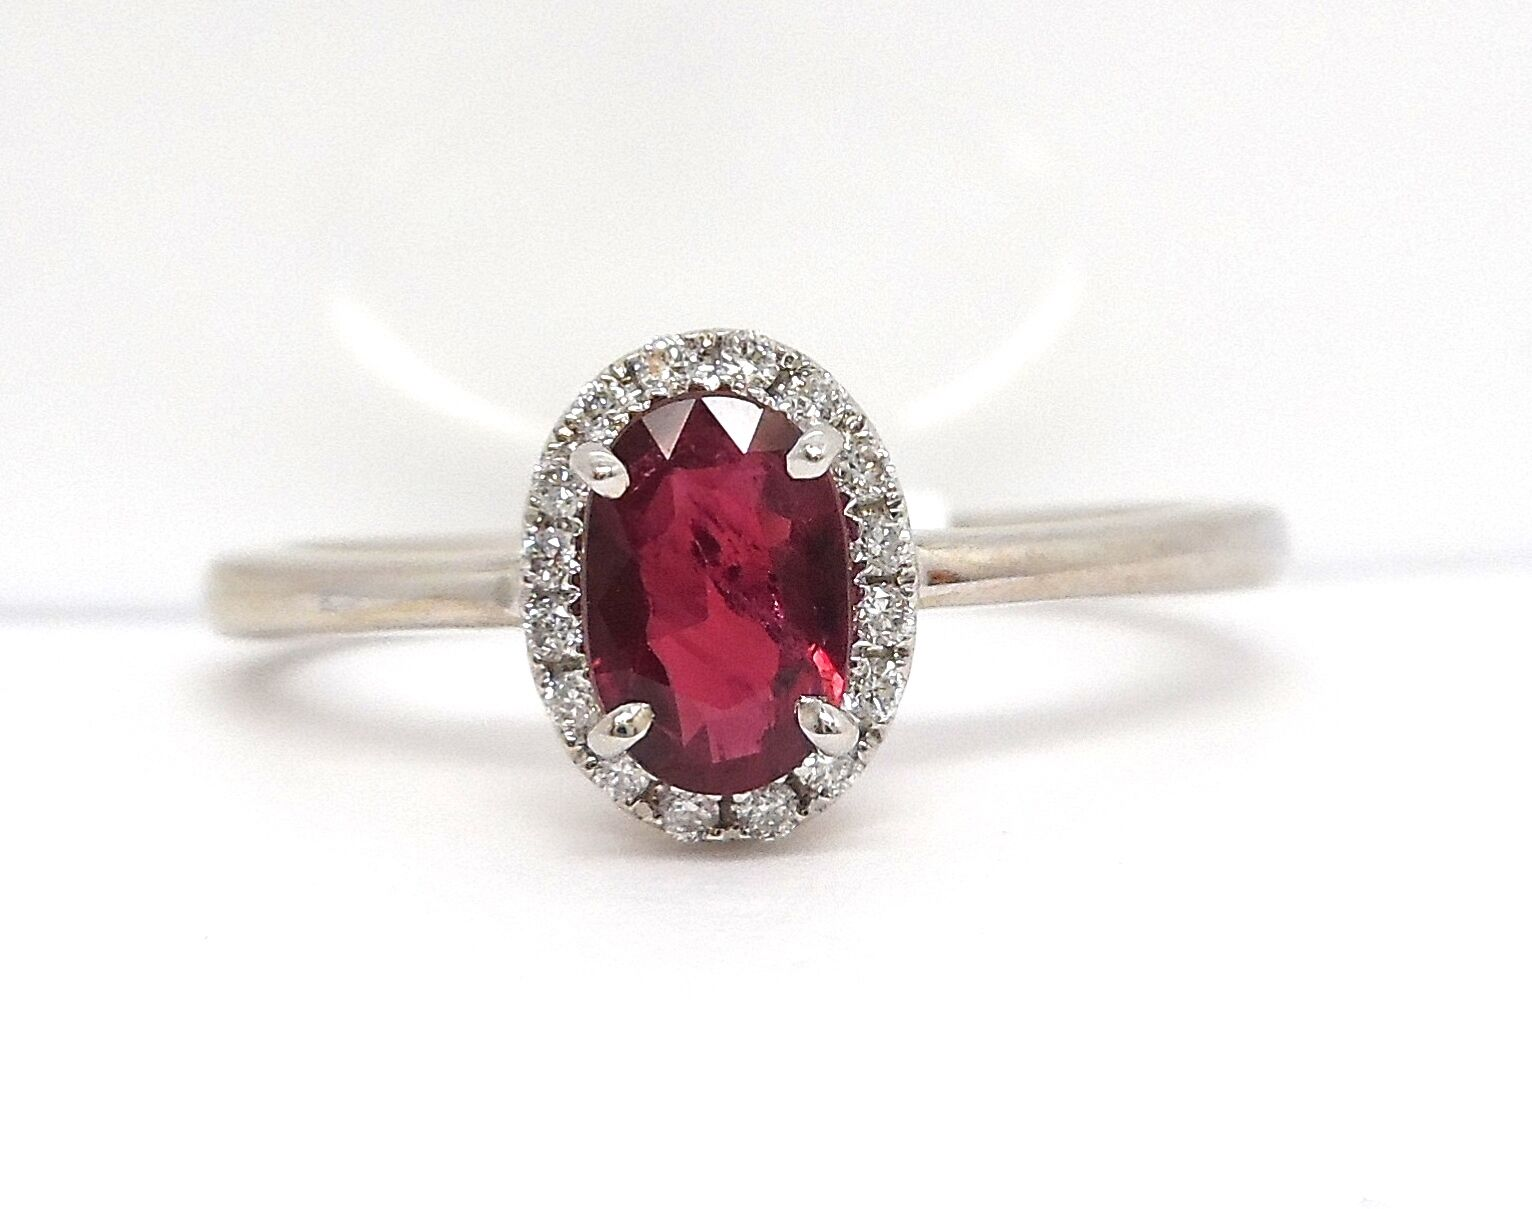 14K WHITE gold OVAL HALO DIAMOND AND RUBY RING